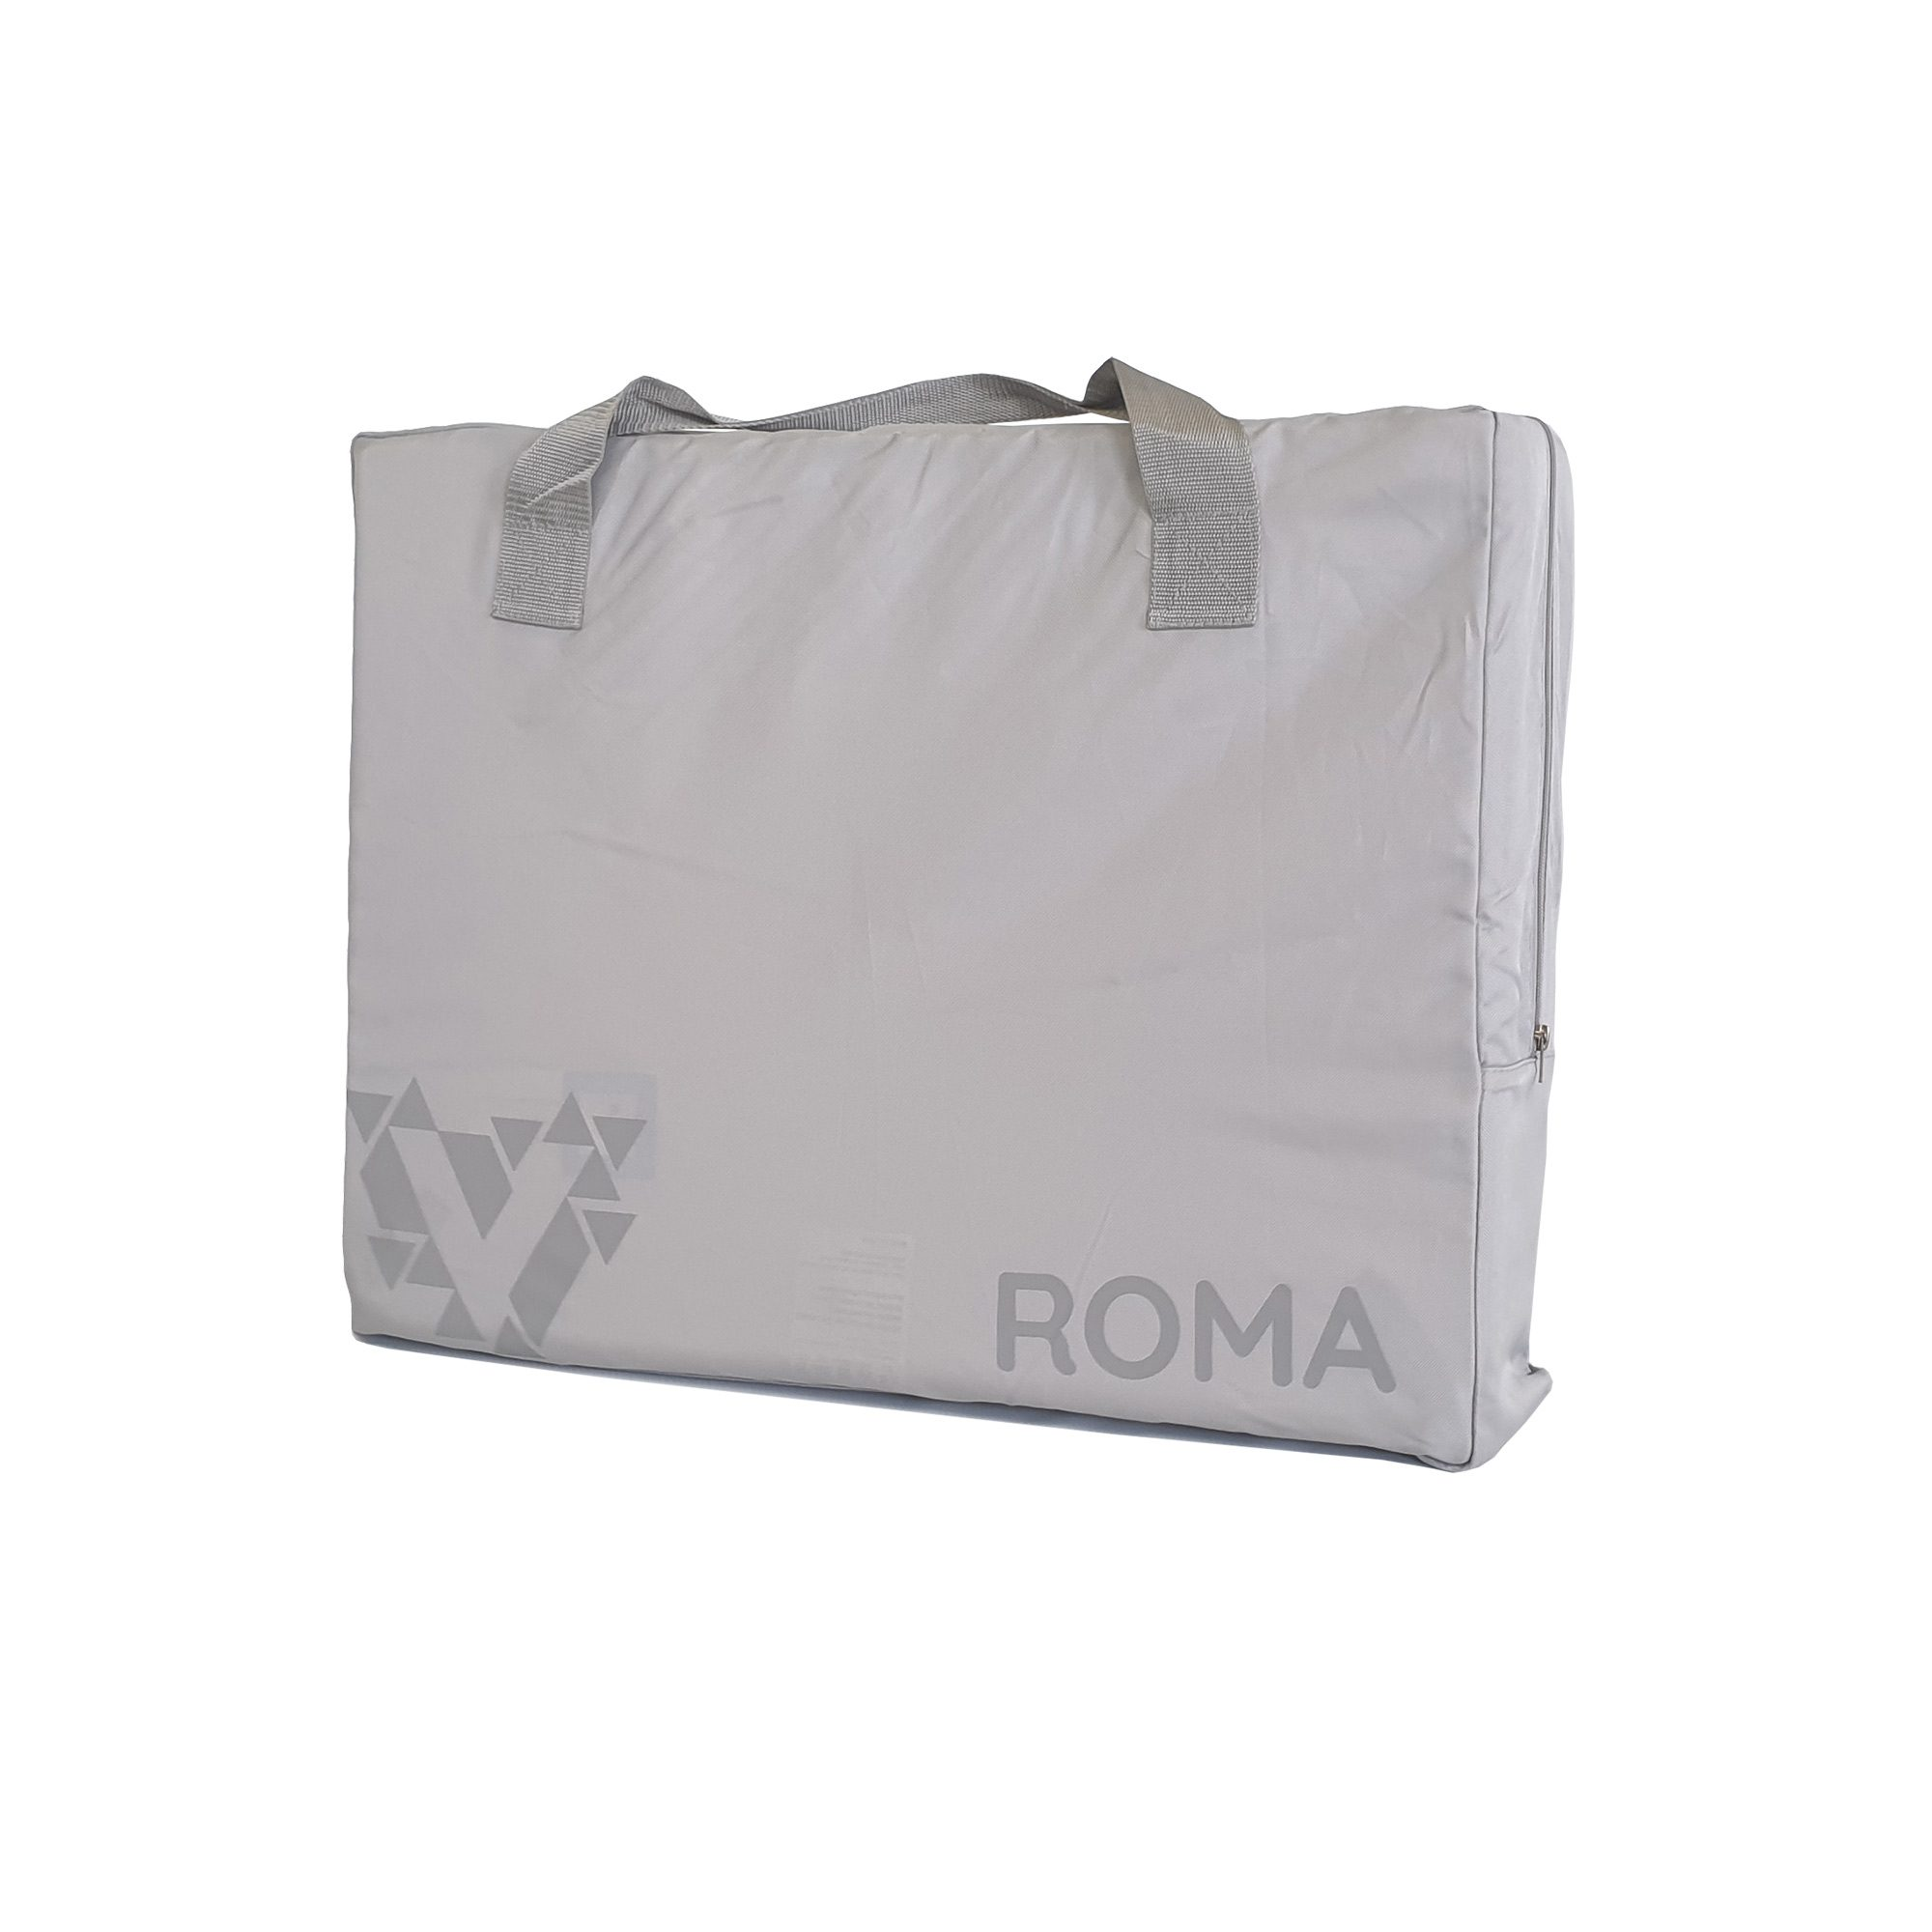 Customised Roma travel cot in stardust silver